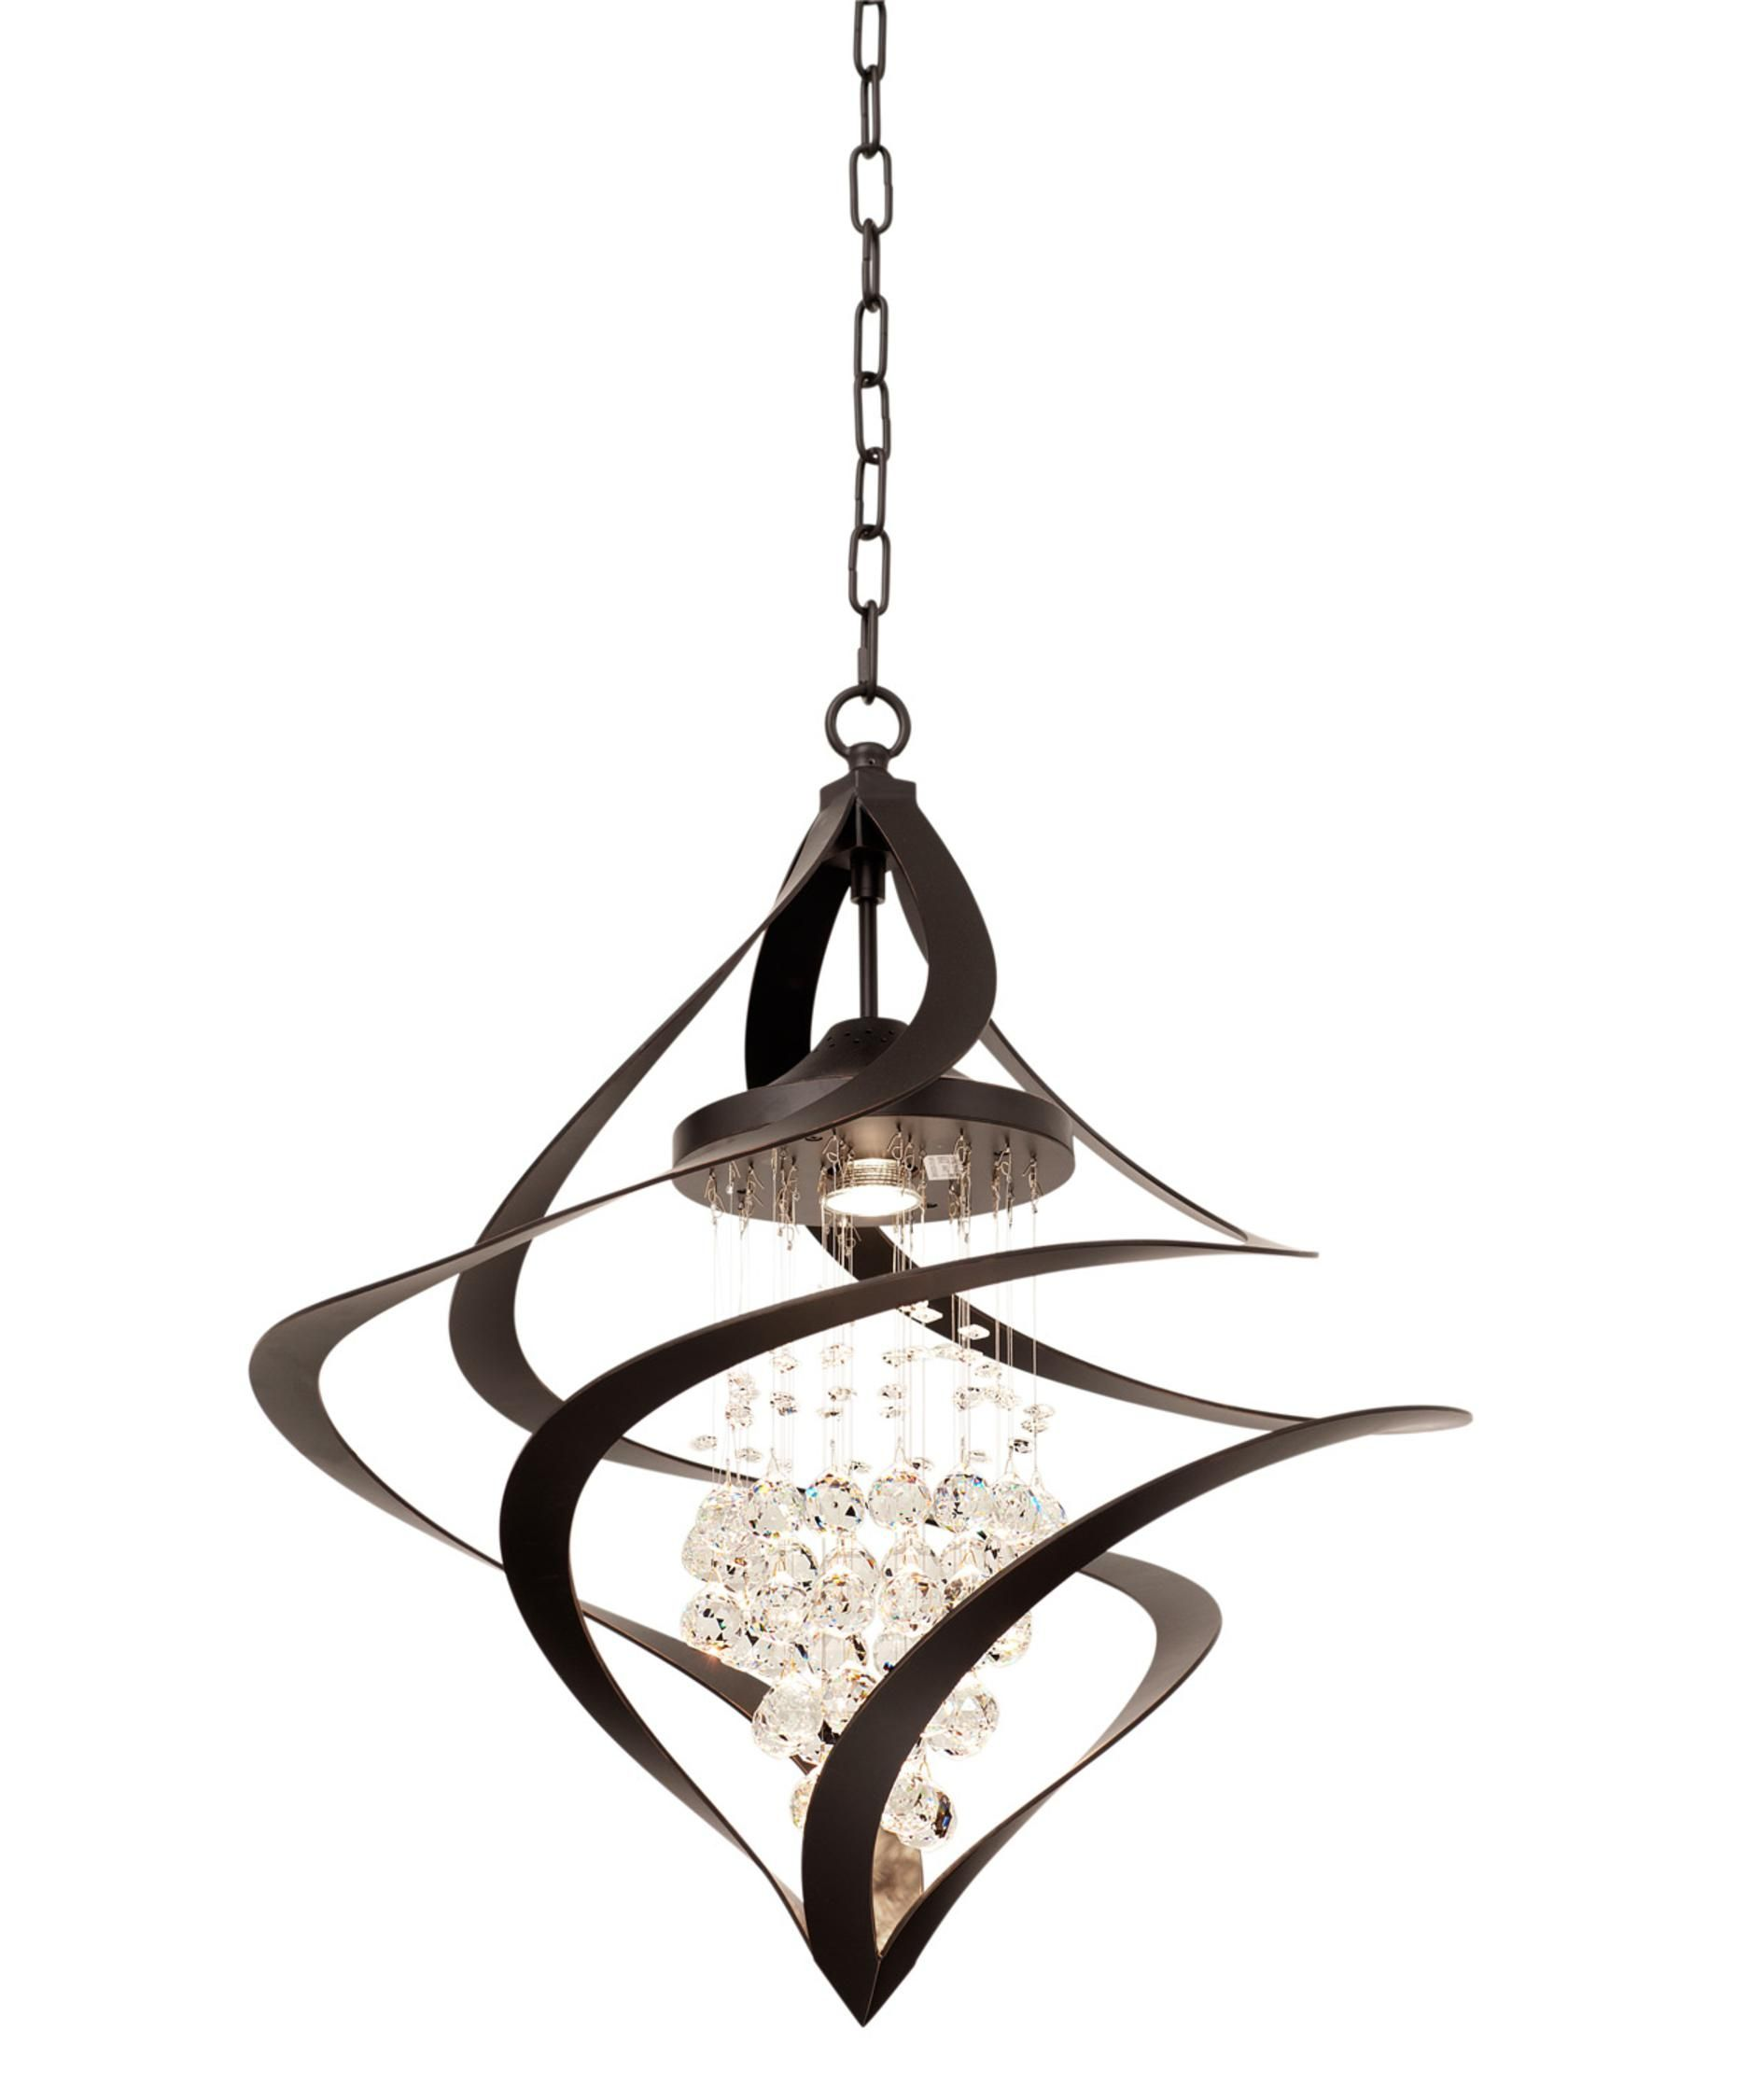 Get The Perfect Light Fixture For Your Home With Kalco Lighting: Kalco  Oxford Foyer Pendant